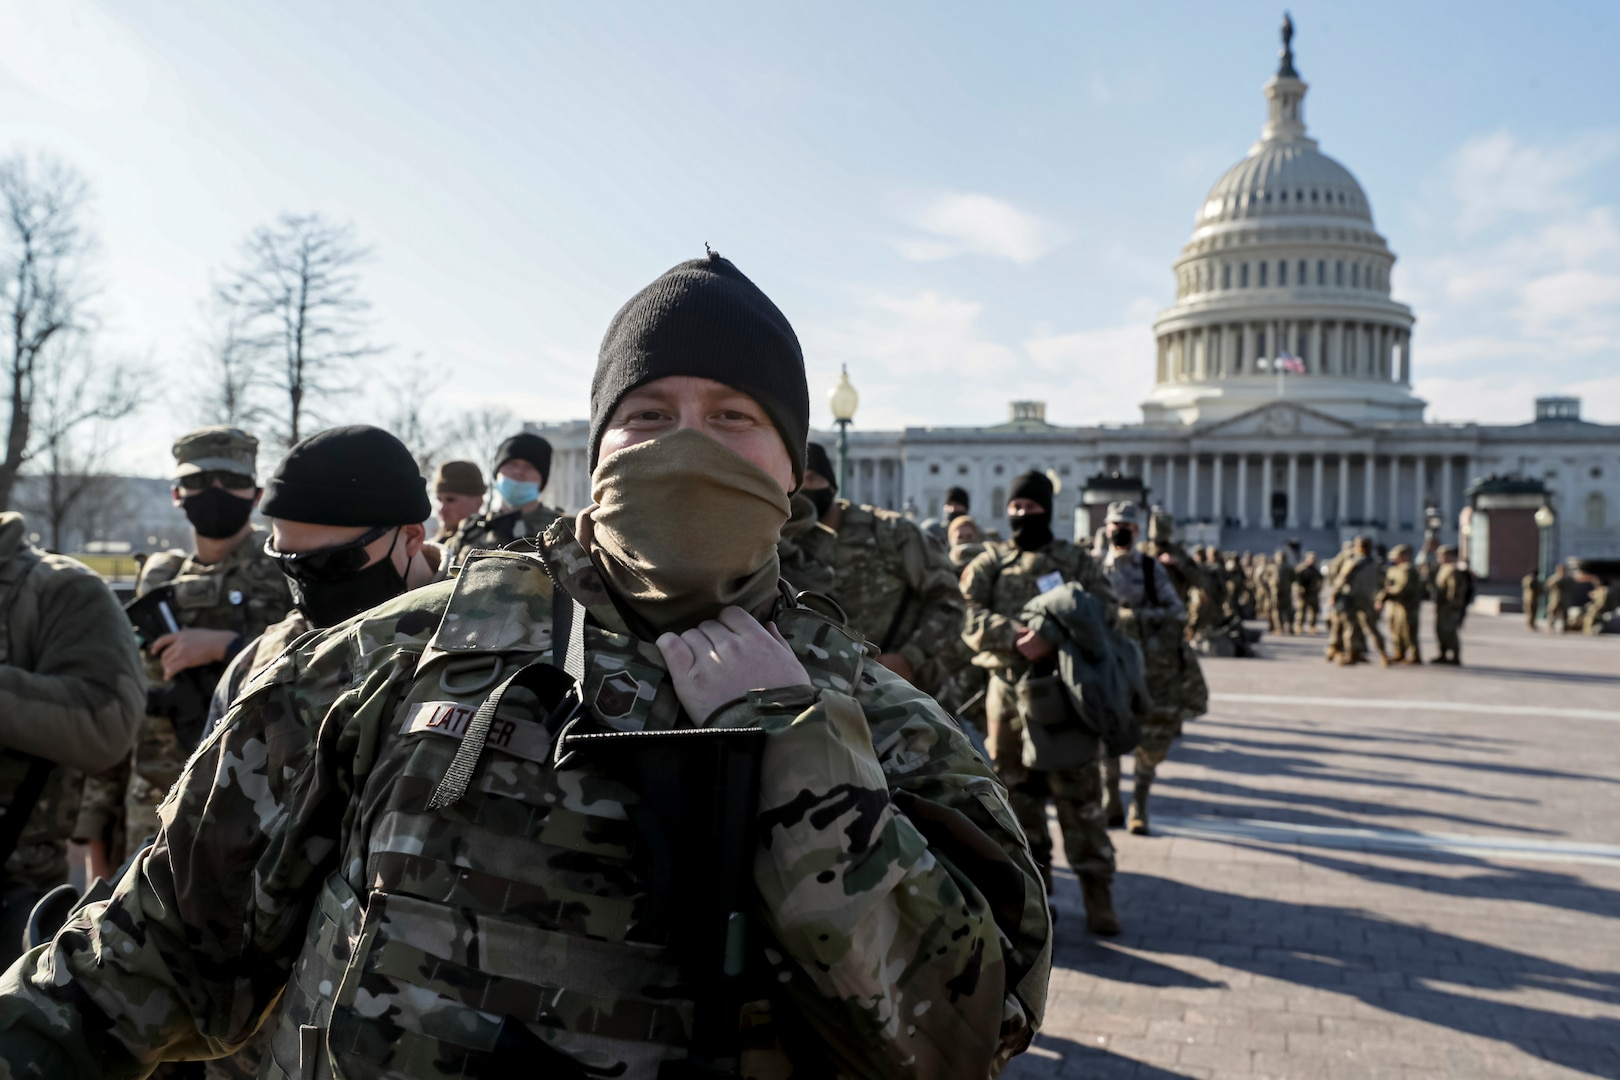 U.S. Air Force Master Sgt. Sean Latimer, a crew chief with the New Jersey National Guard's 177th Fighter Wing, stands in line after finishing a shift near the Capitol in Washington, D.C., Jan. 13, 2021. National Guard Soldiers and Airmen from multiple states have traveled to Washington to support to federal and district authorities for the inauguration of President-elect Joe Biden on Jan. 20.